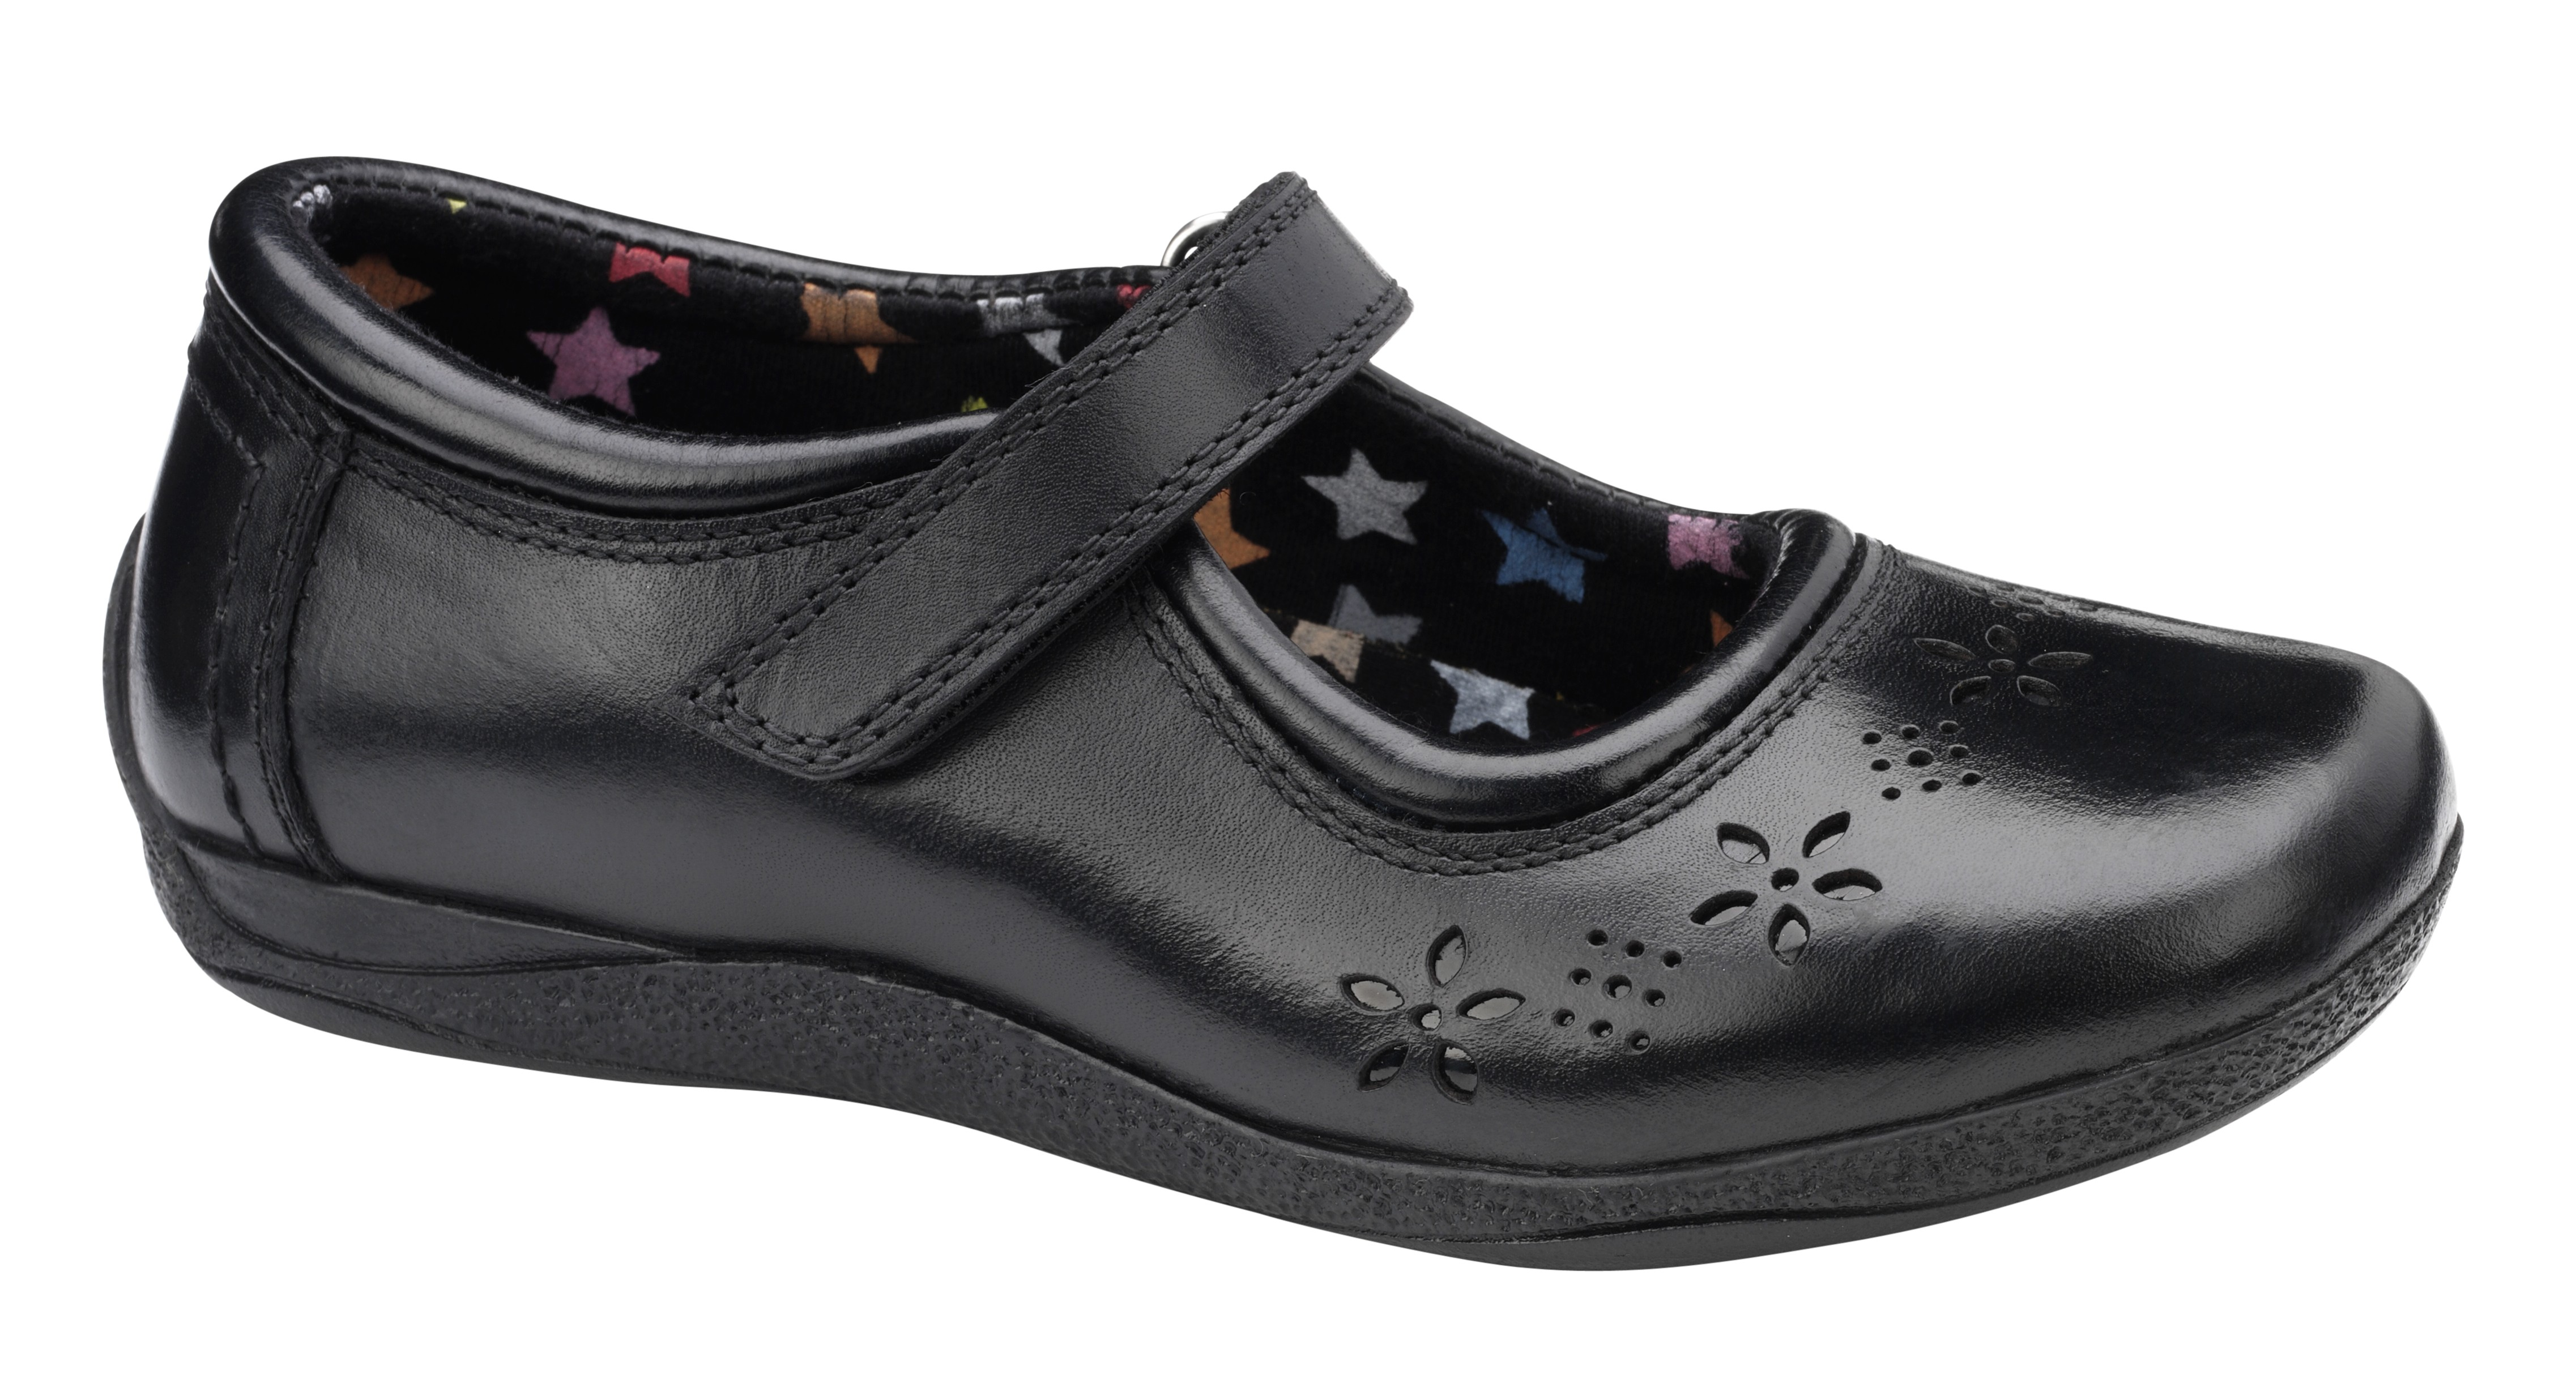 Hush Puppies School Shoes Review